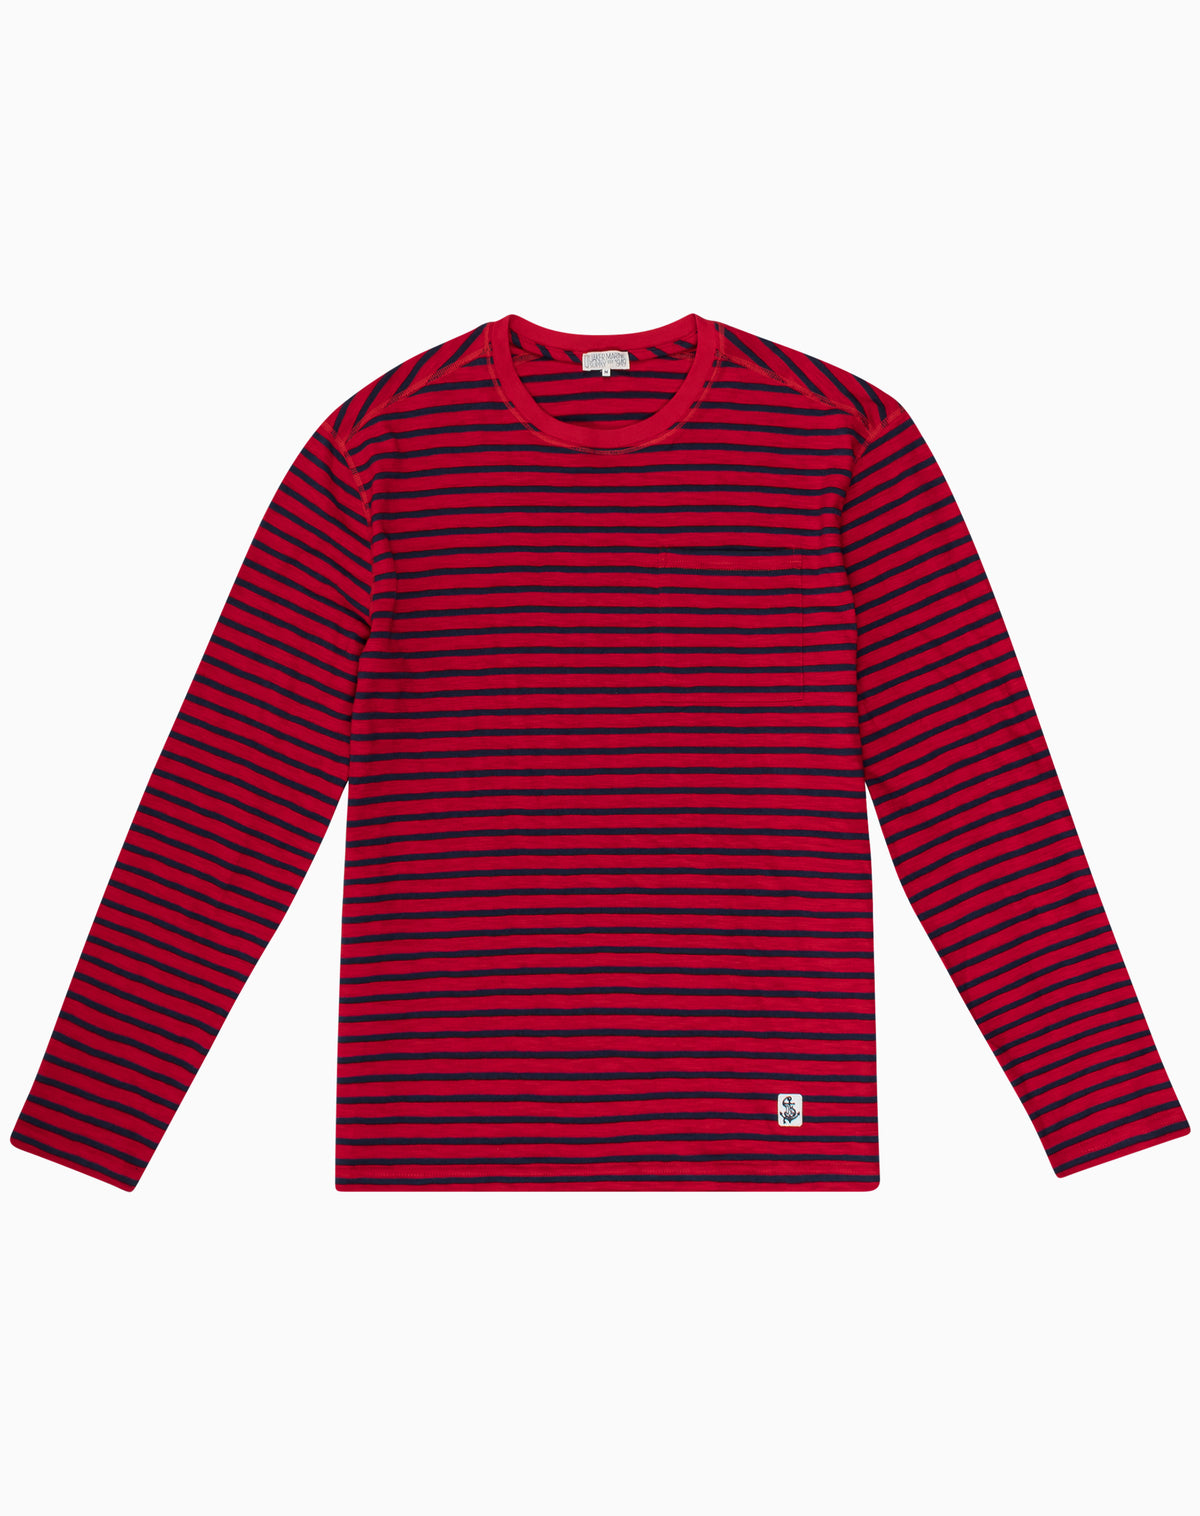 Long Sleeve Striper in Red & Navy